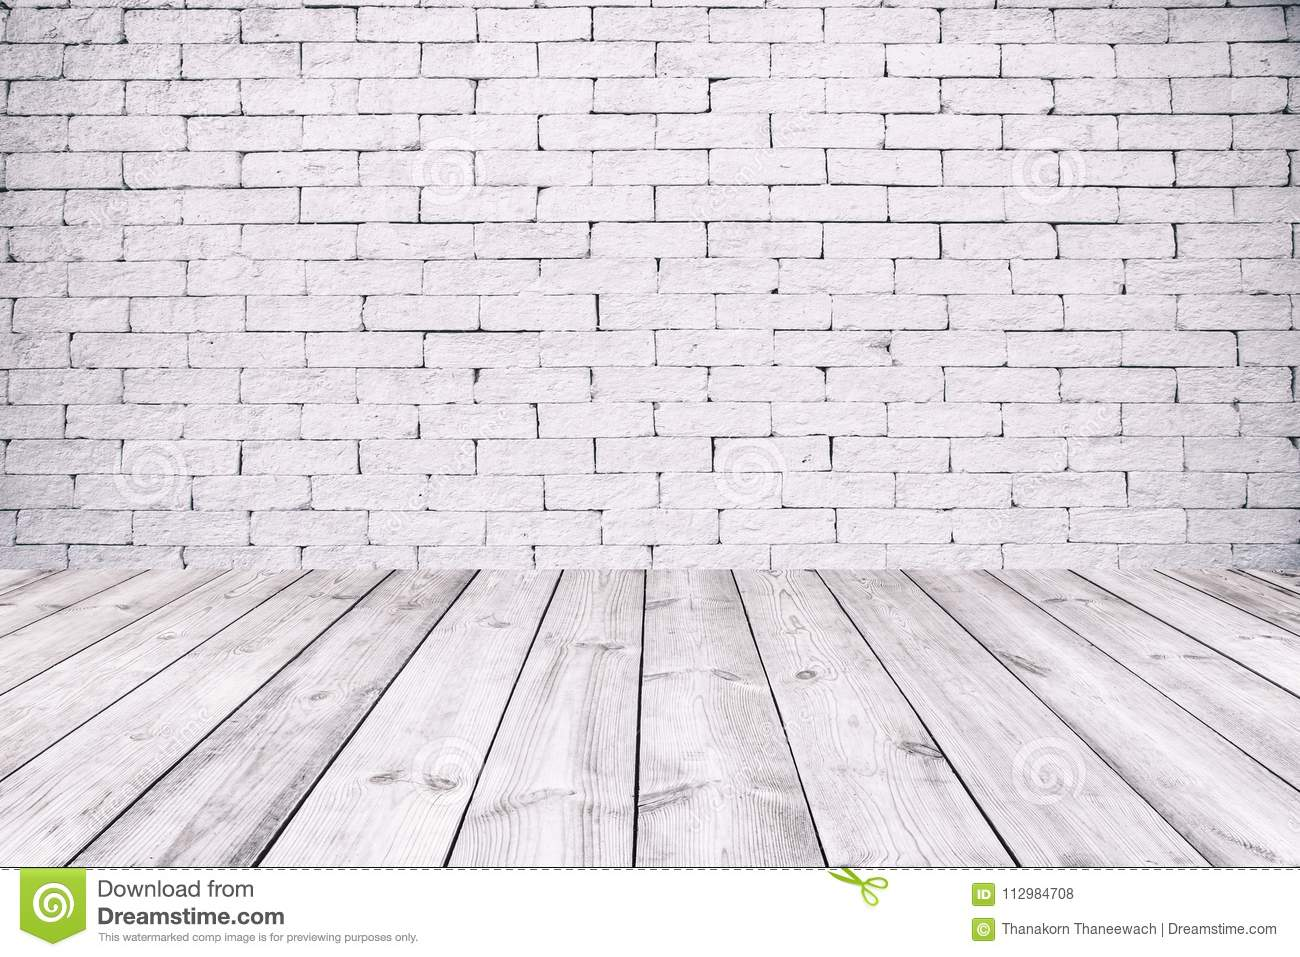 Room interior with white brick wall and wooden floor